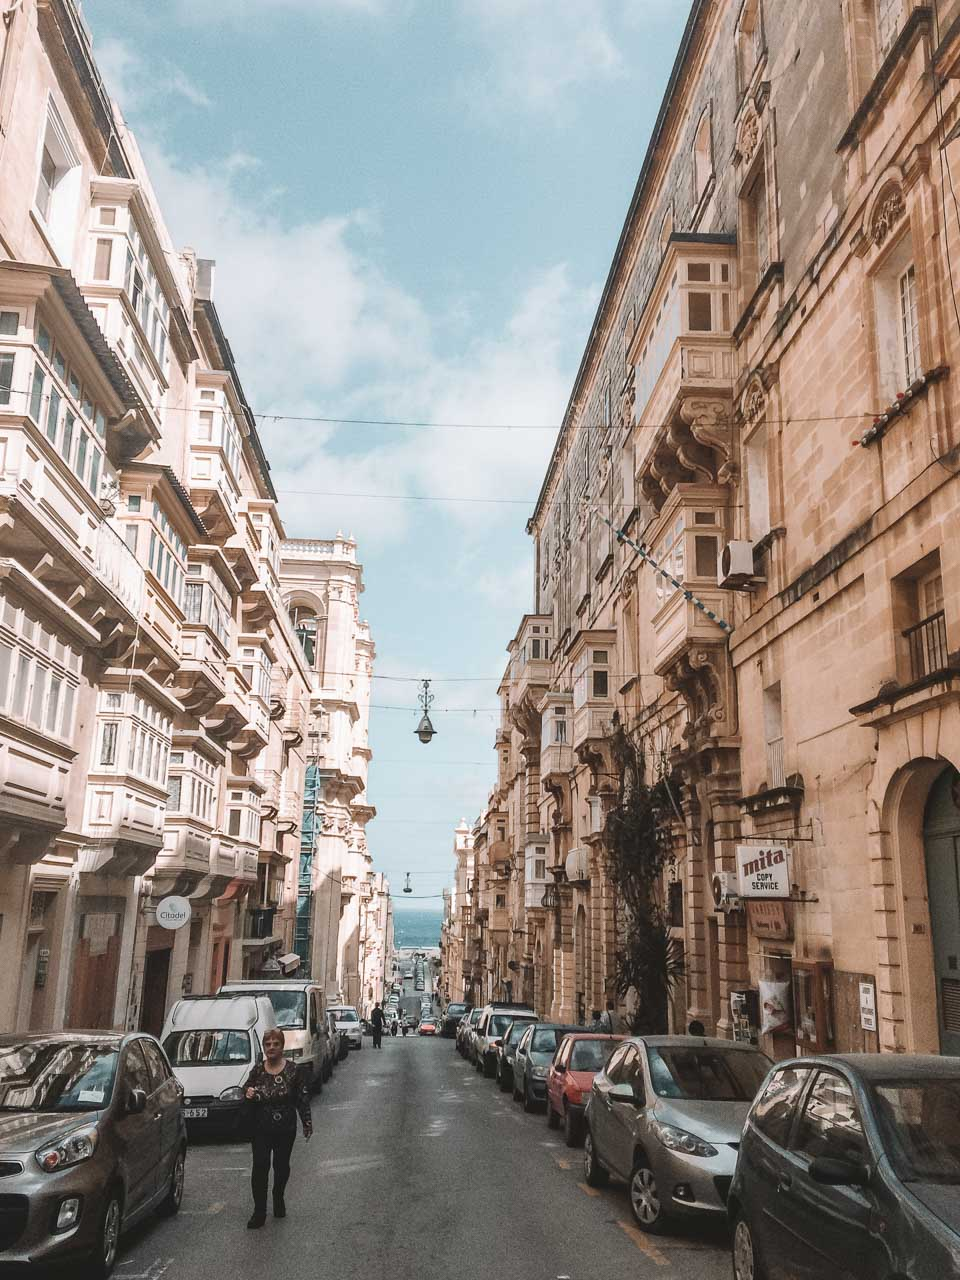 A street in Valletta, Malta lined with cars